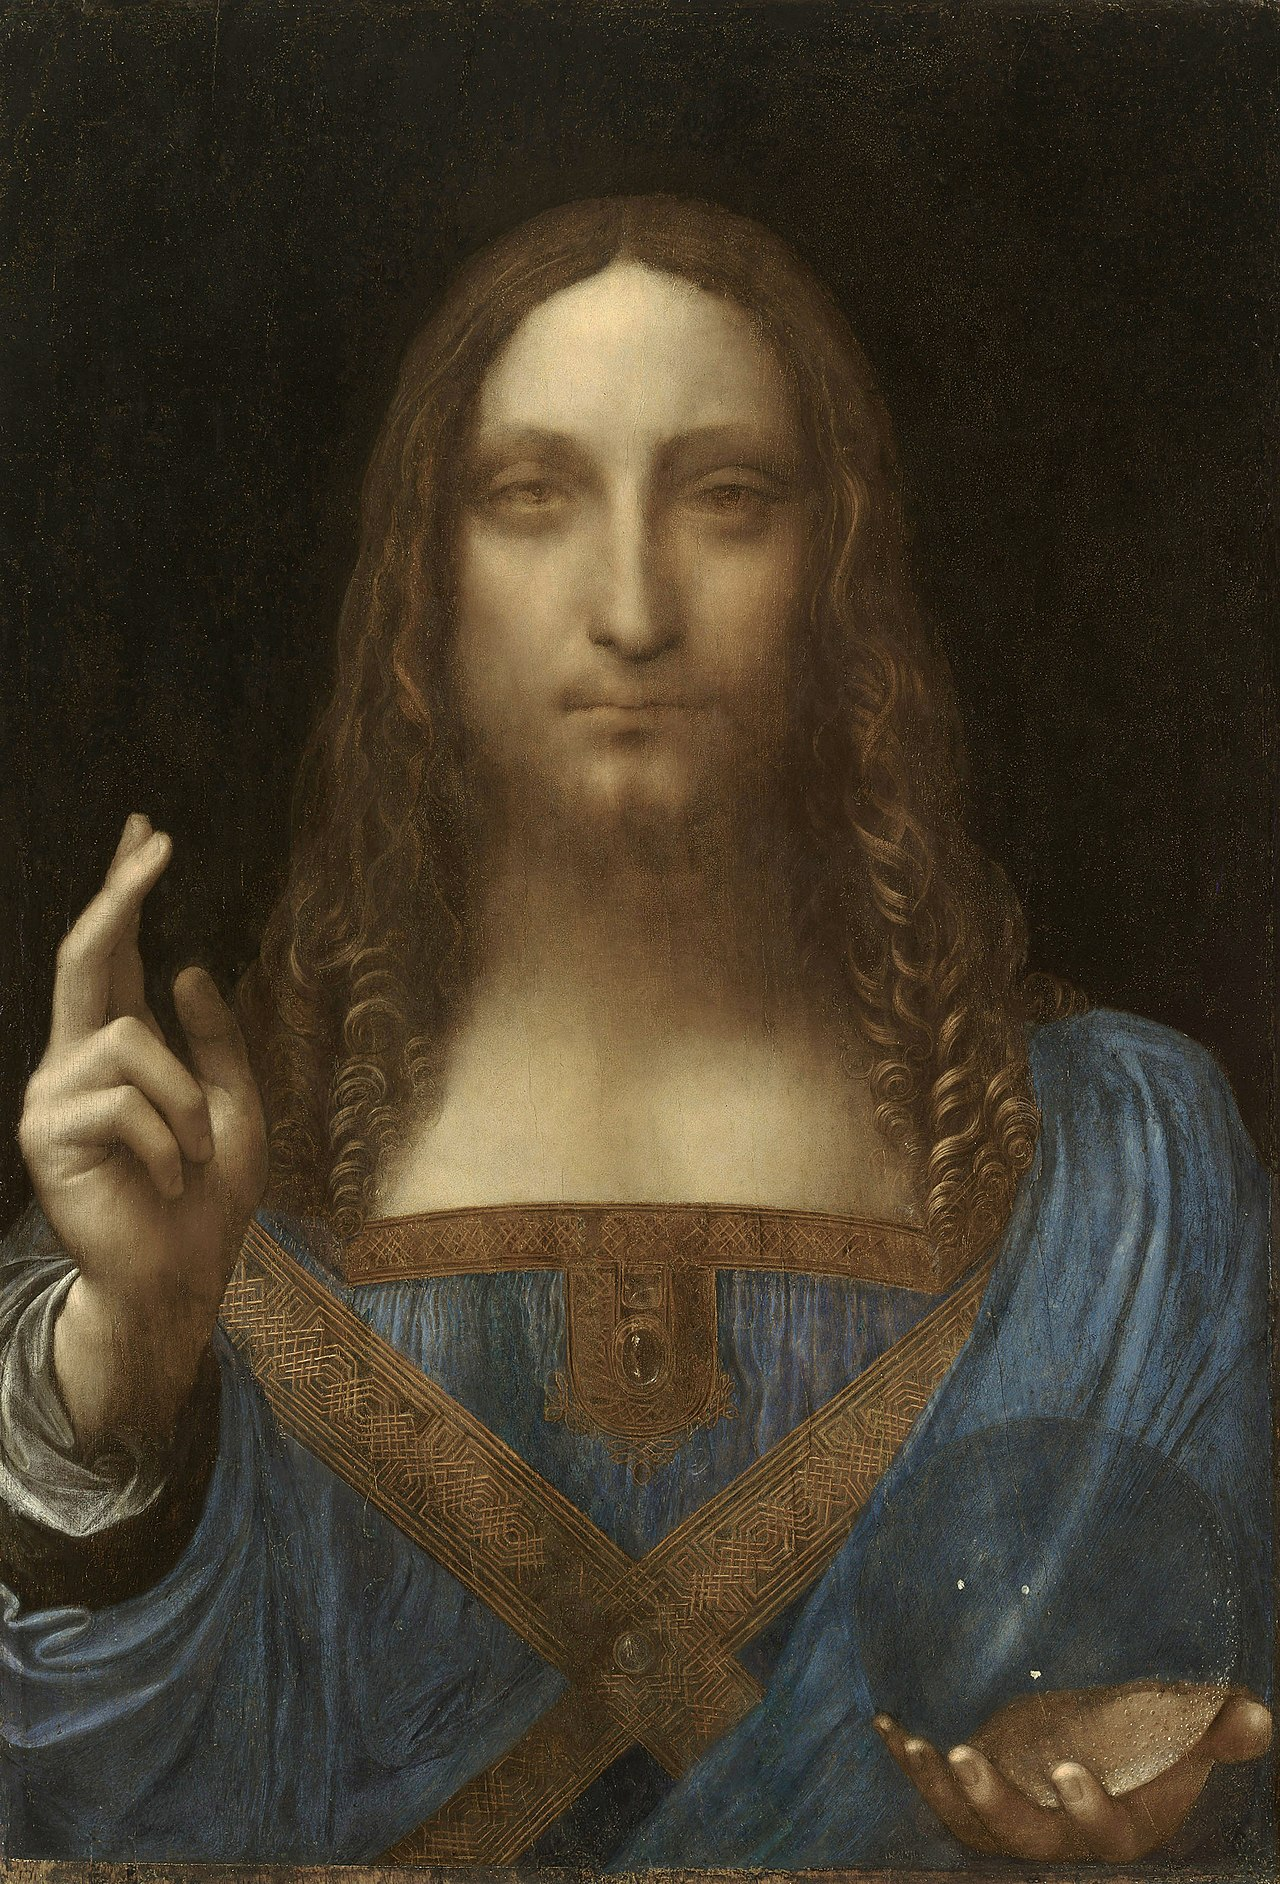 Salvator Mundi,c.1500 Leonardo da Vinci, oil on walnut 45.4 × 65.6 cm. Image from Wiki